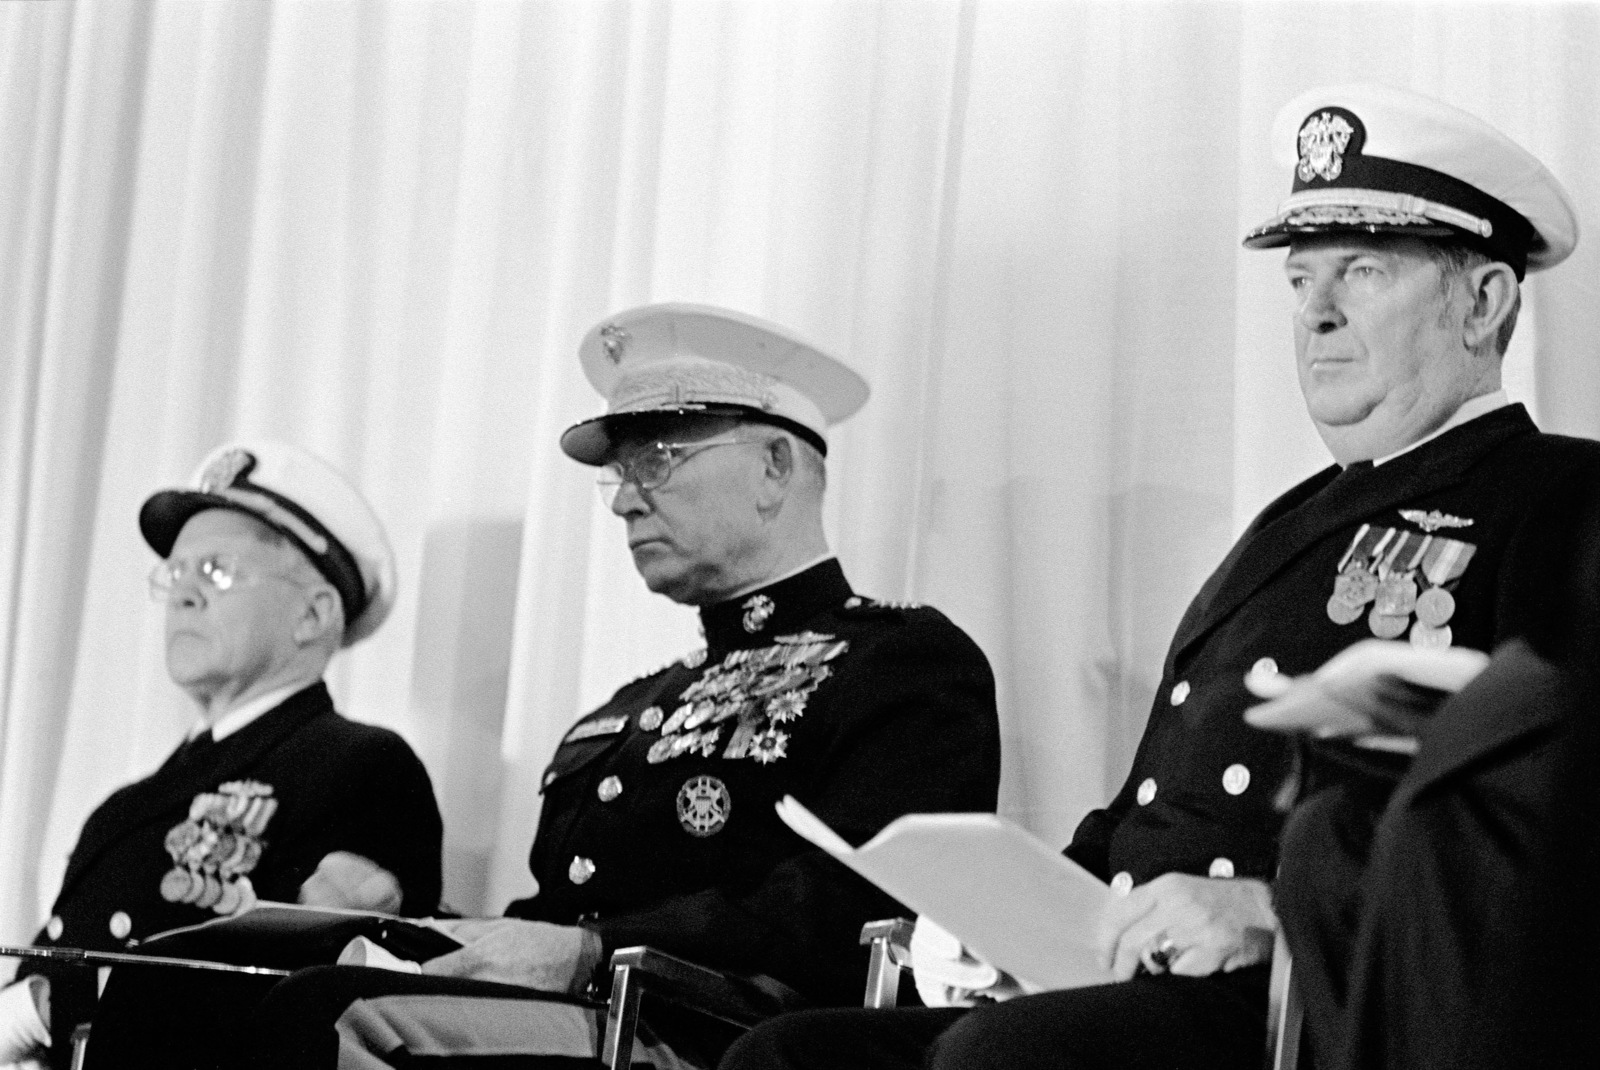 Attending the commissioning of the dock landing ship USS GERMANTOWN (LSD 42) at the Lockheed shipyard are (left to right): Rear Admiral Laverne S. Severance Jr., commander, Naval Base, Seattle; General (GEN) Paul X. Kelley, commandant of the Marine Corps; and Rear Admiral (RDML) (lower half) John J. Higginson, commander, Amphibious Group Three